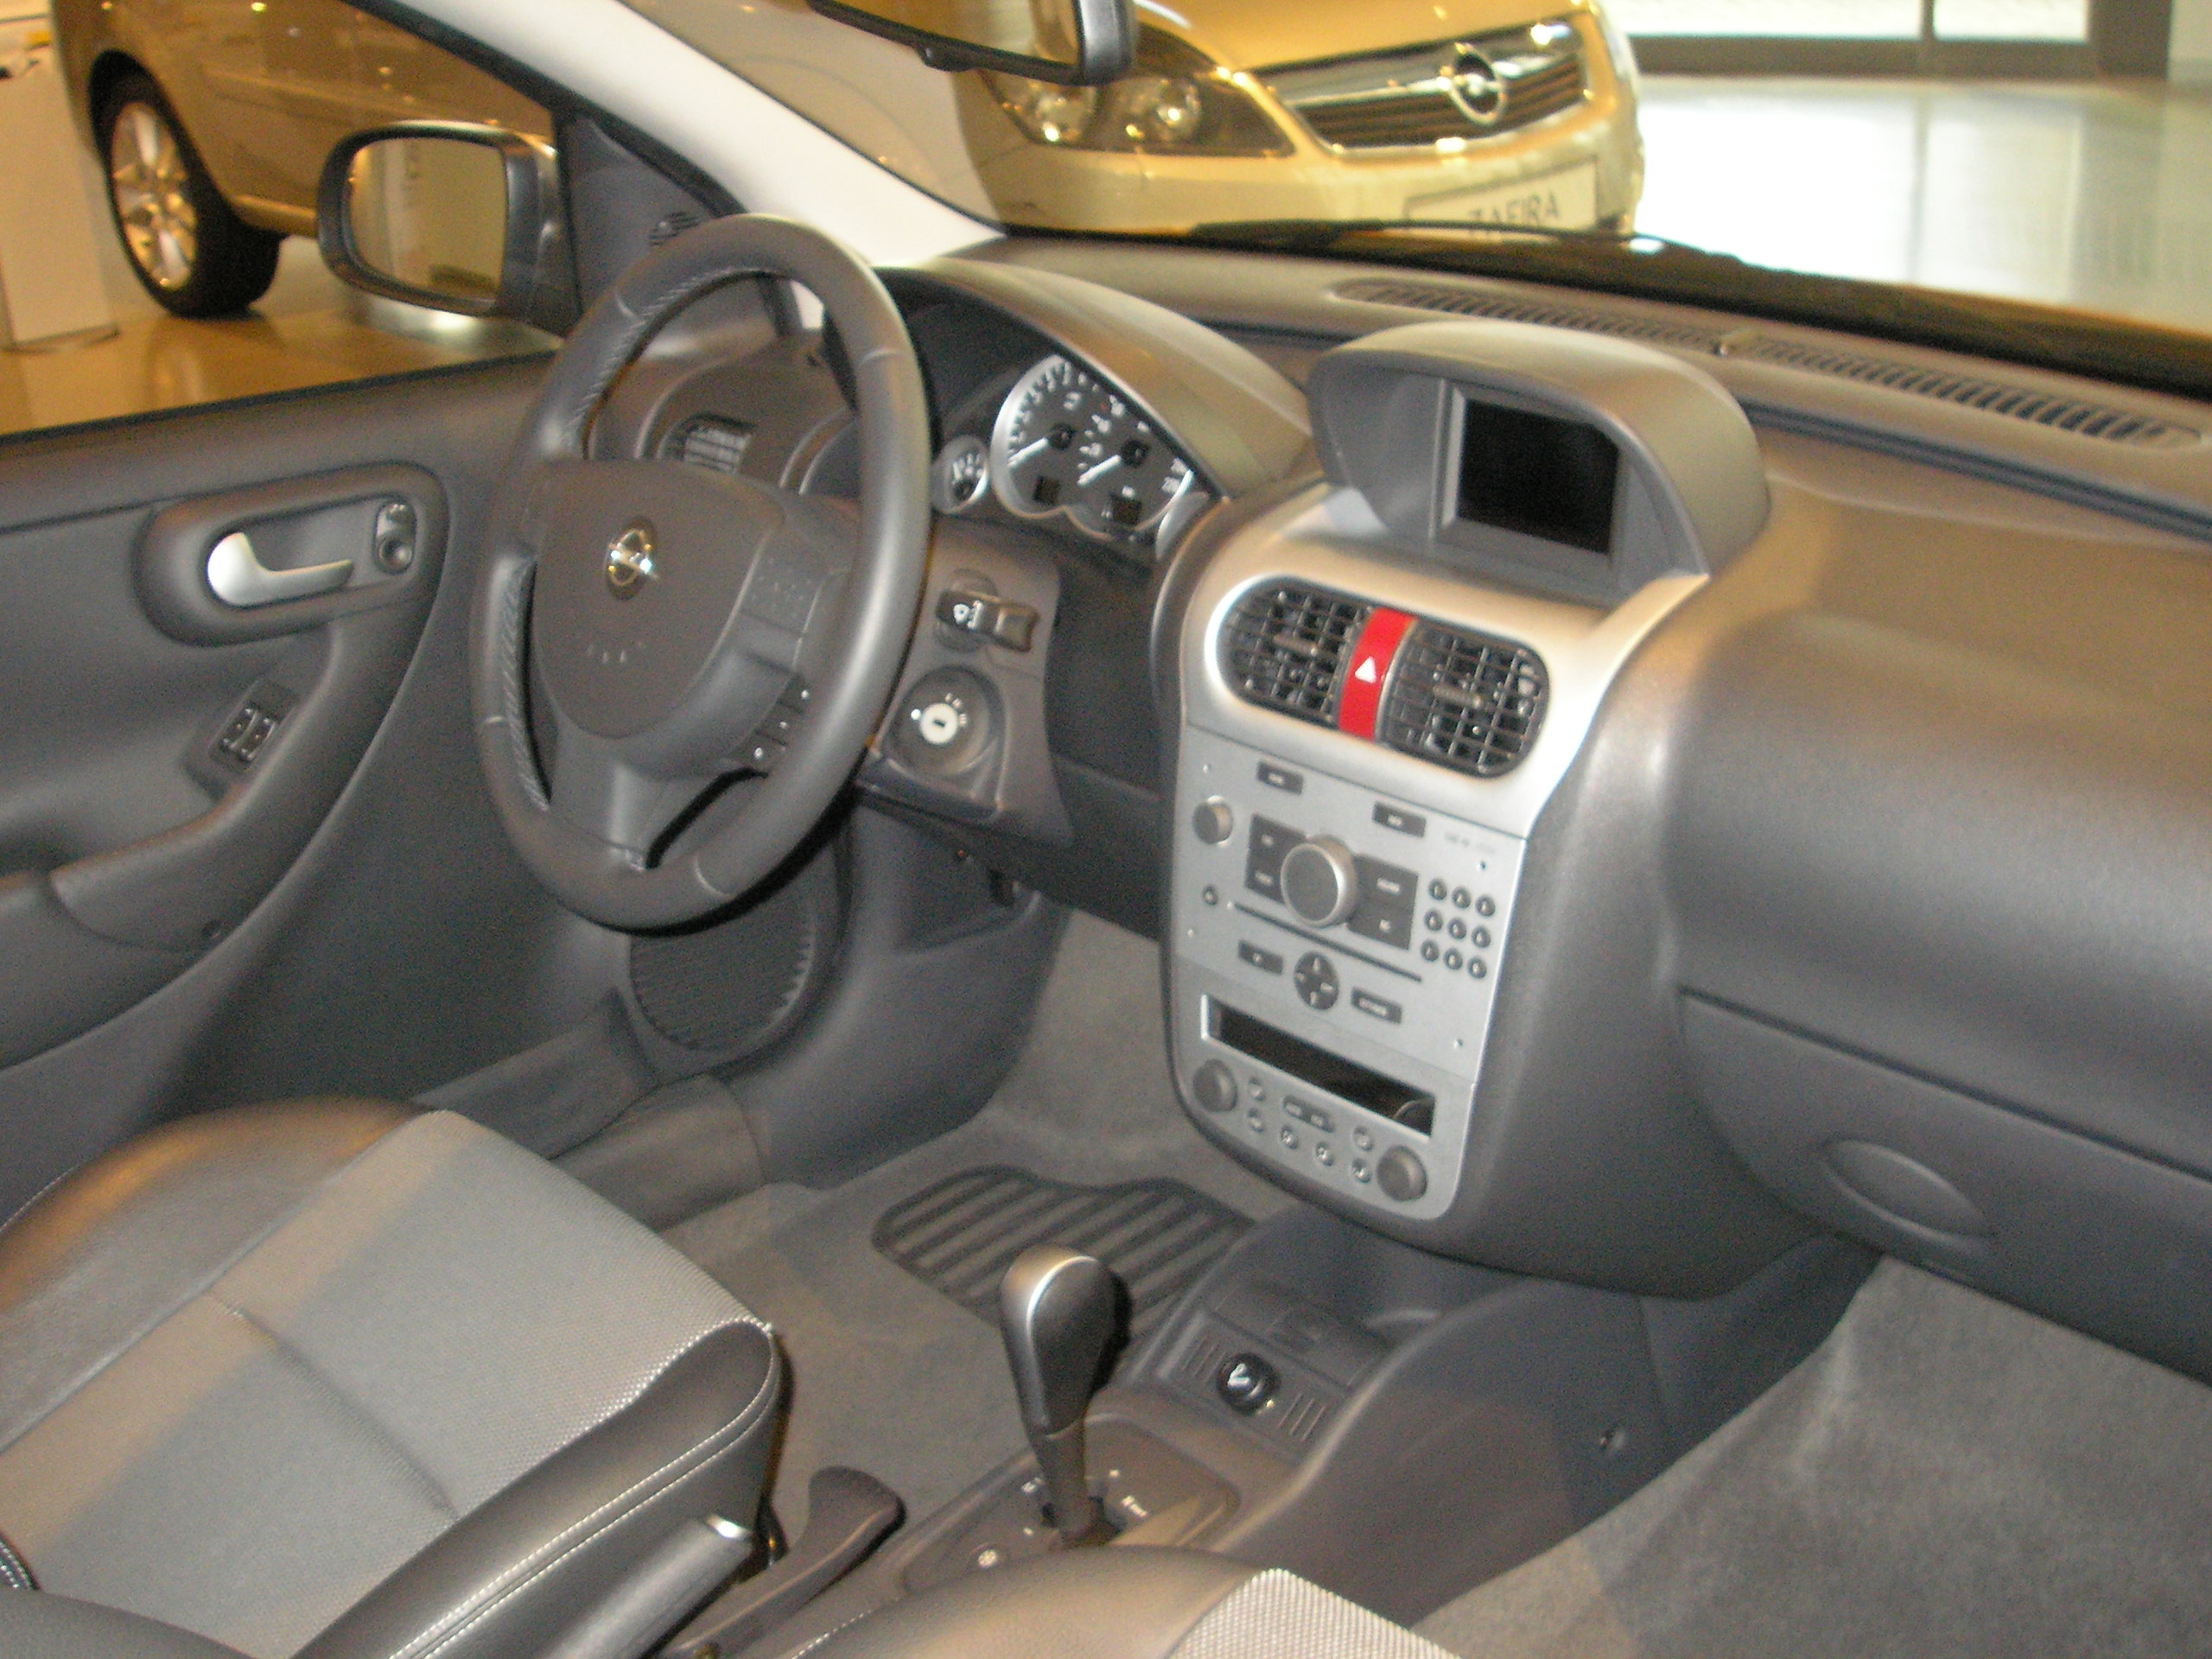 File:Opel Corsa interior.JPG - Wikimedia Commons